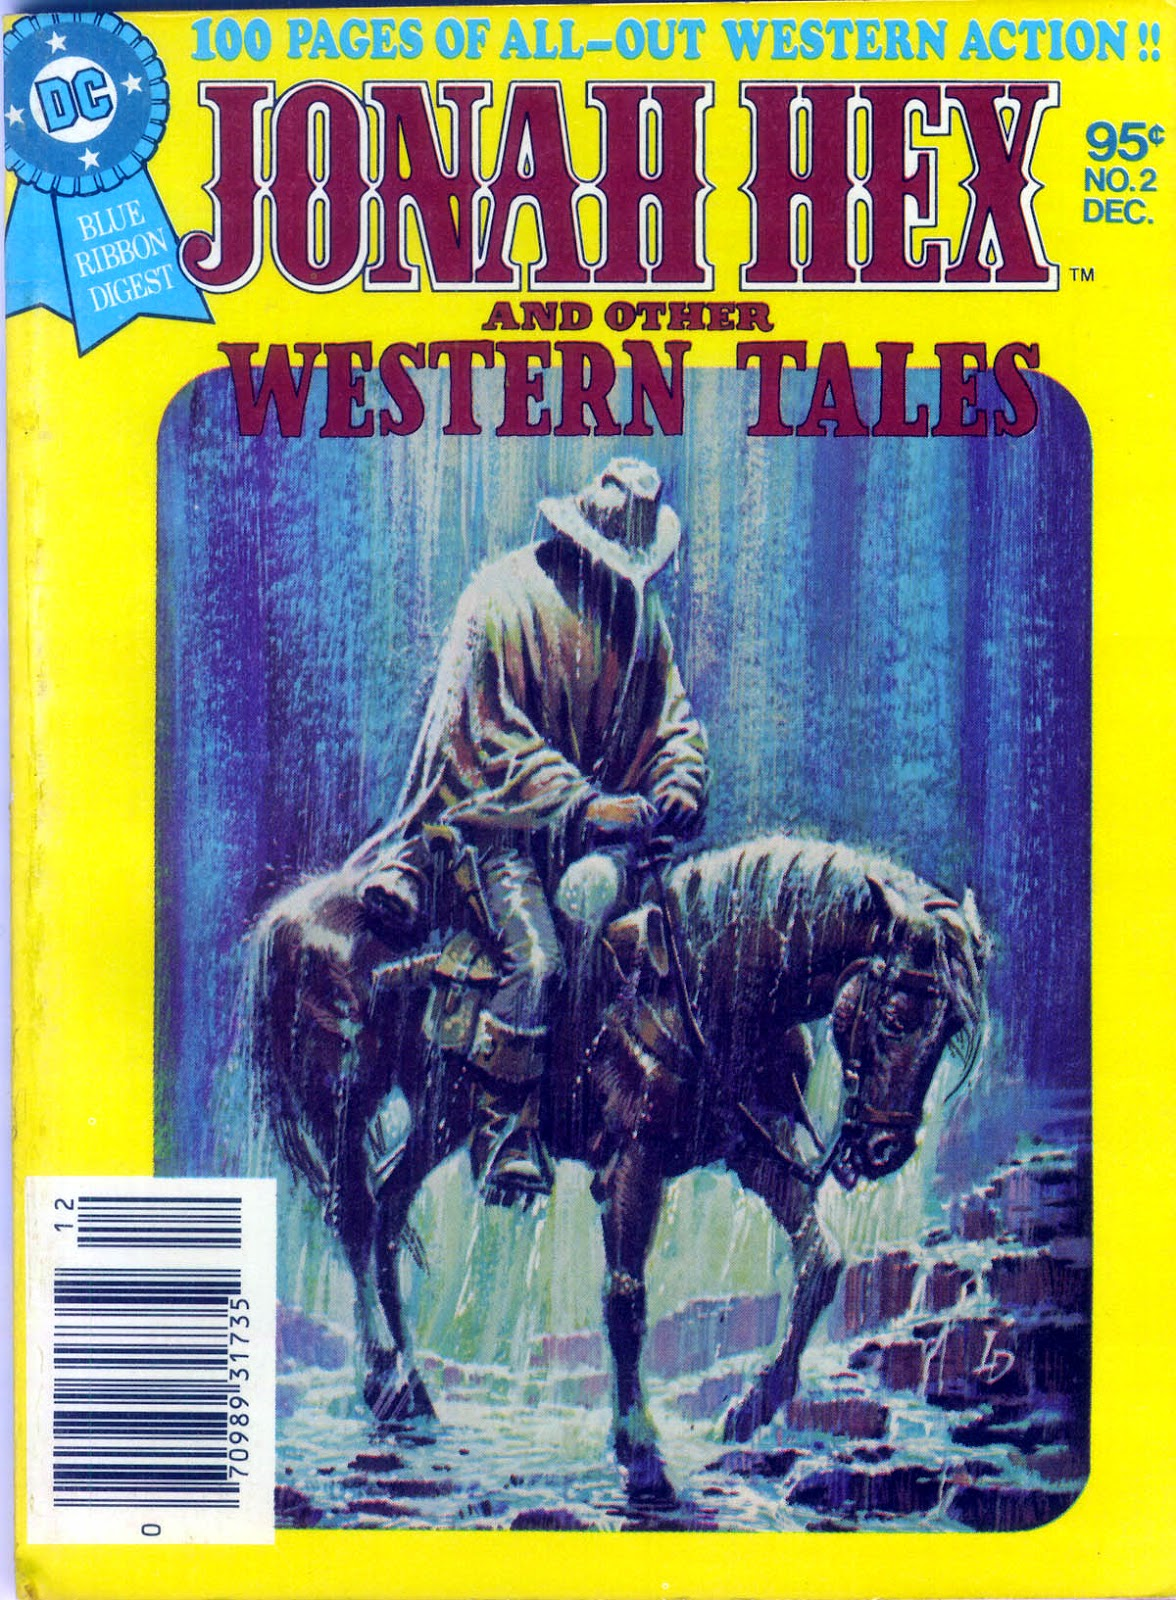 The Bronze Age Of Blogs Jonah Hex Hi Hansithe Codes Do Point To An Electrical Problem With Transfer Hardly Ever Bought Westerns Back In War Books Either Or Dc Mystery Titles For That Matter Didnt See When